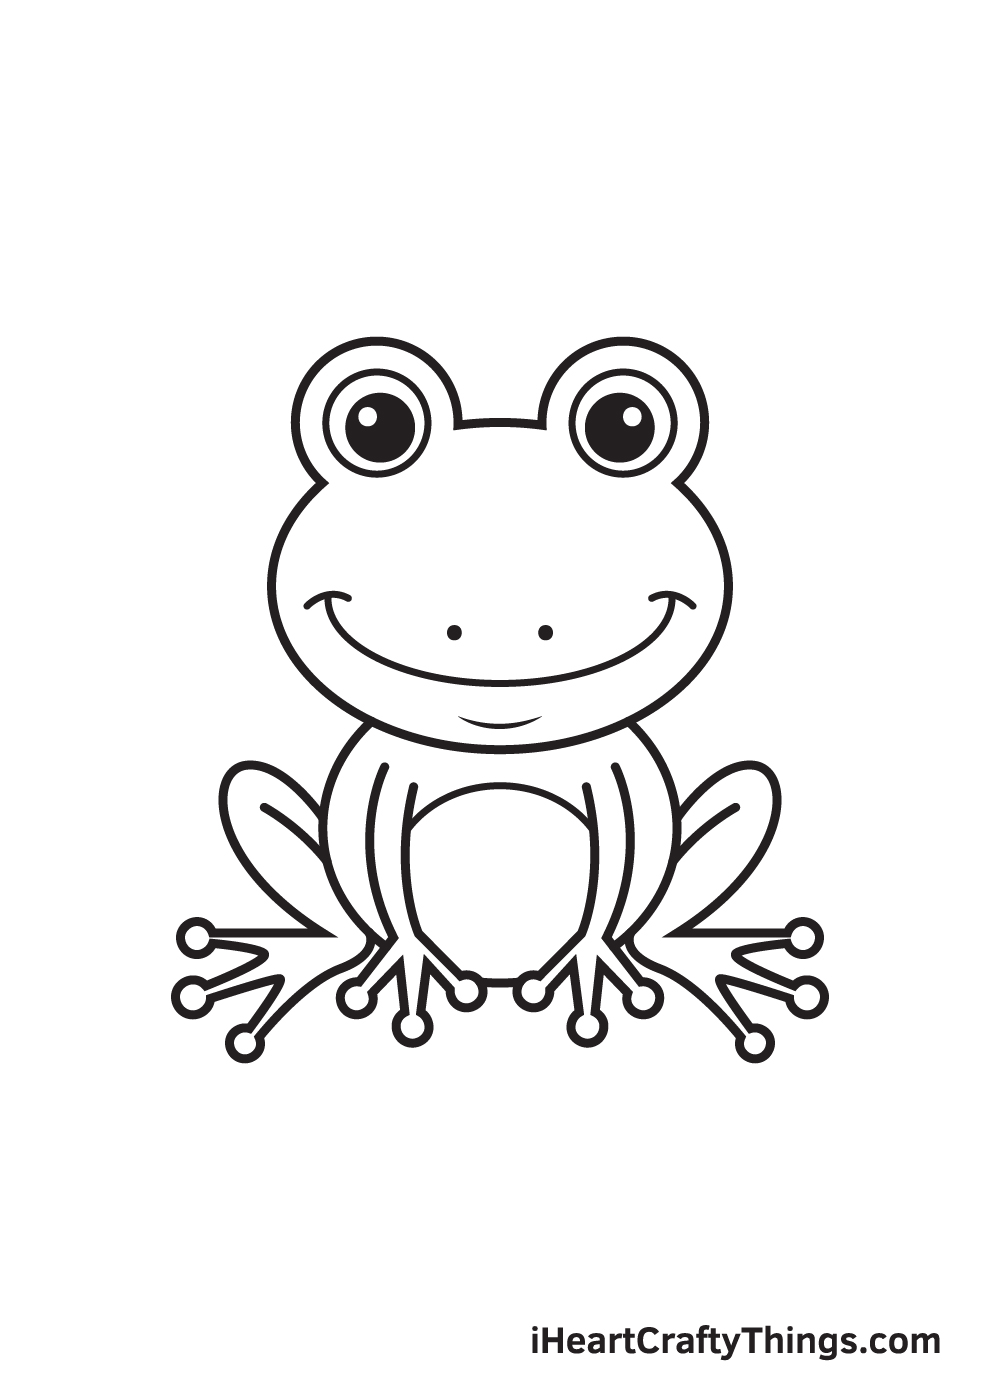 Frog Drawing – Step 9